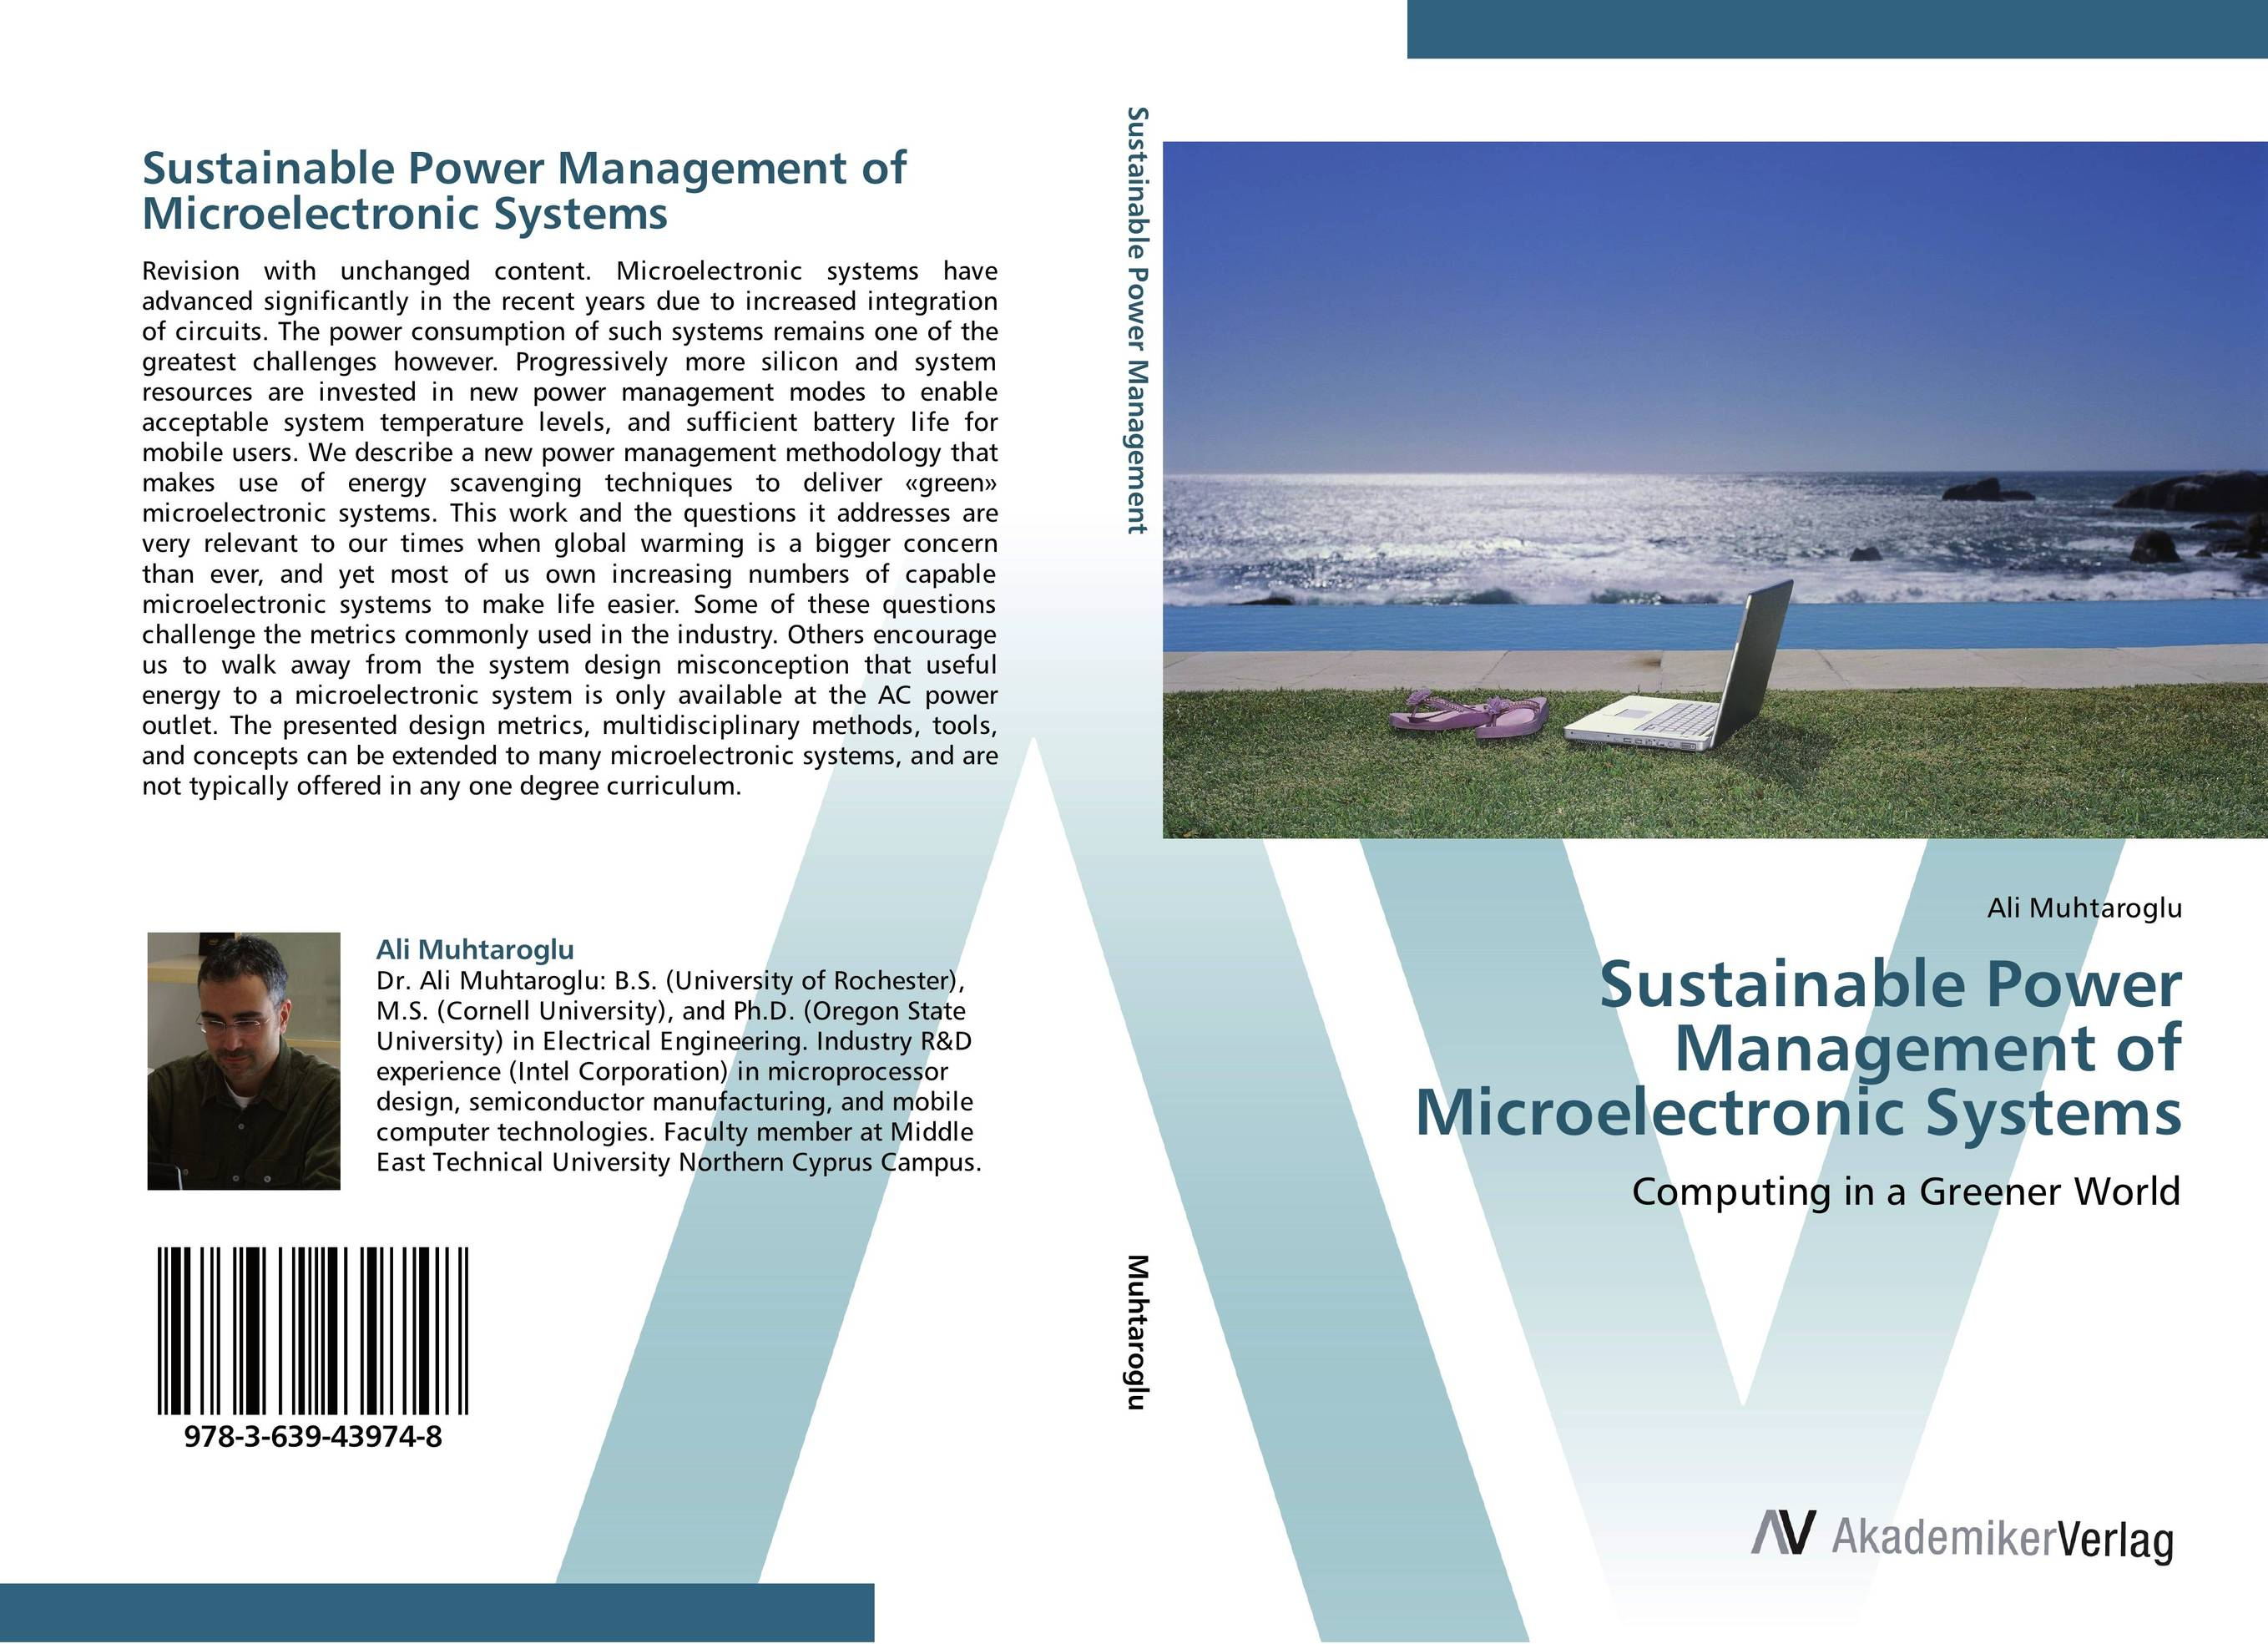 Sustainable Power Management of Microelectronic Systems netcat power tools